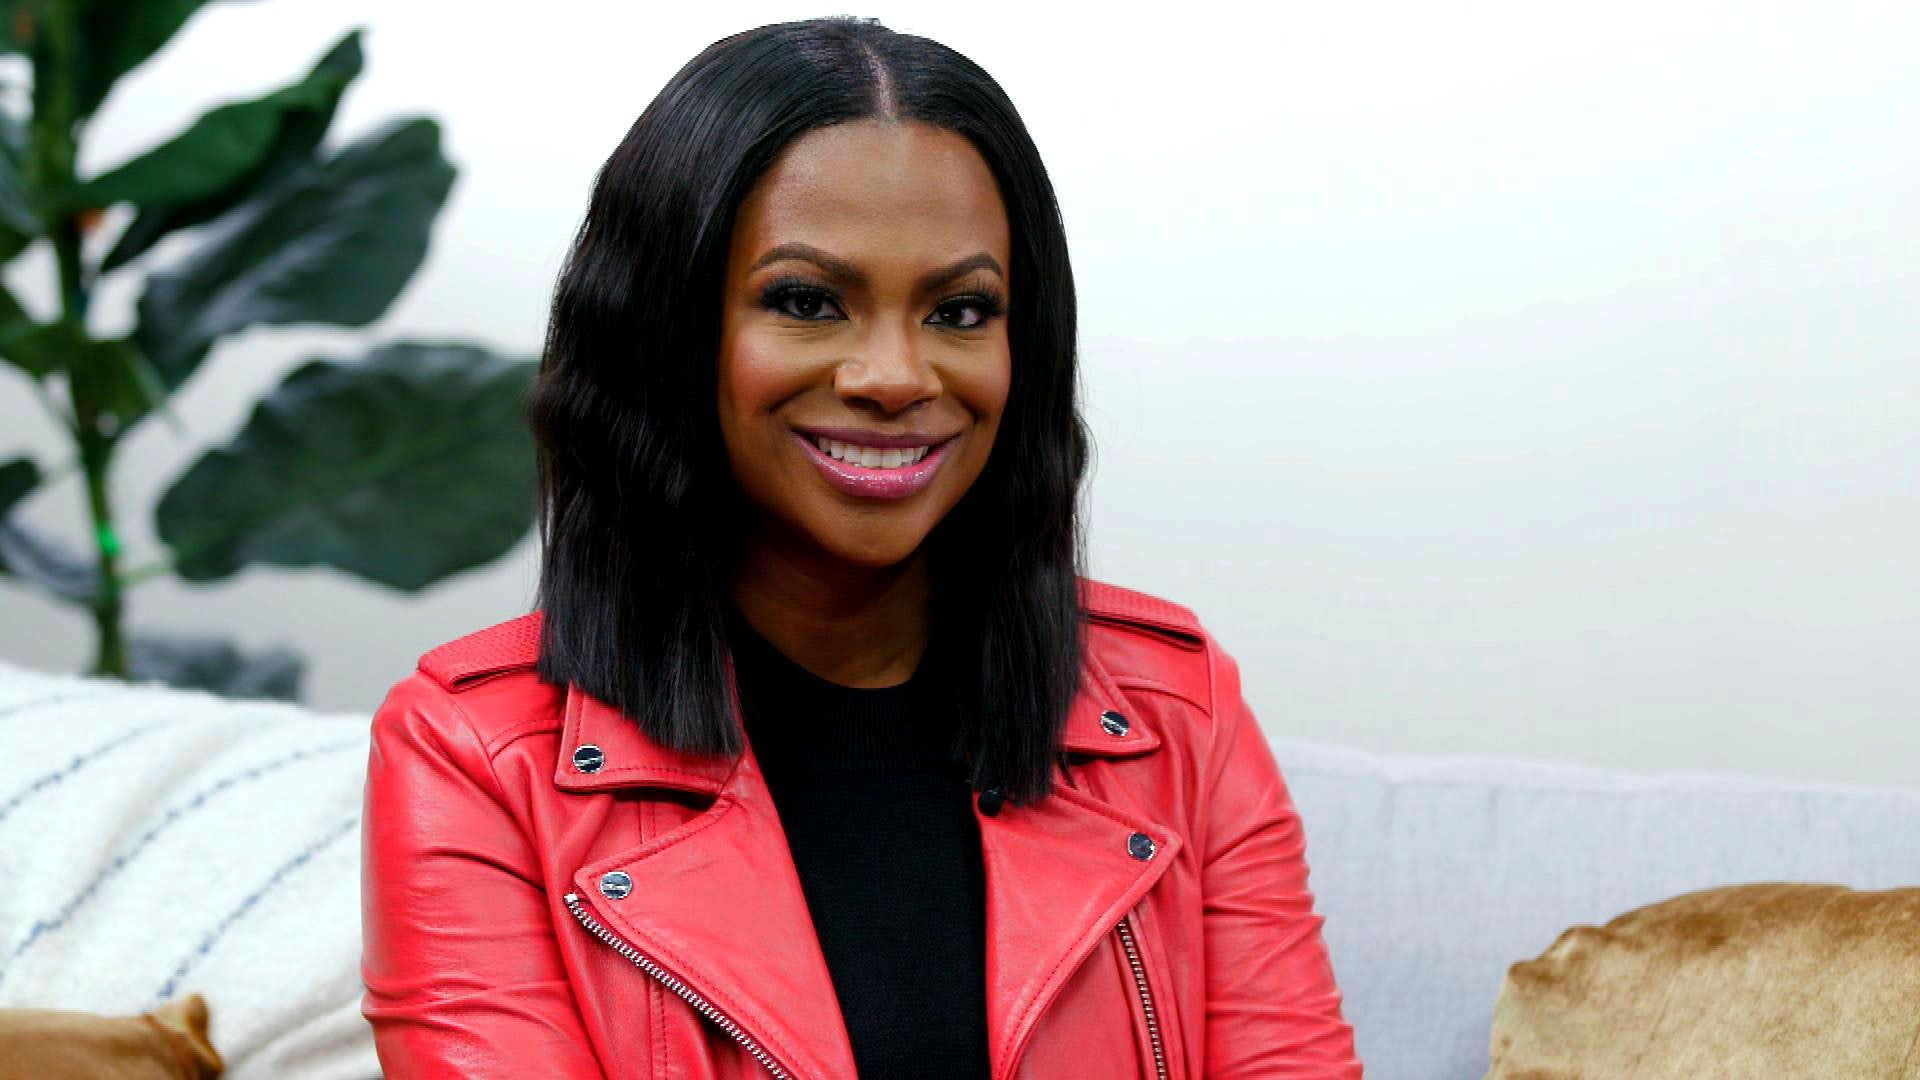 Kandi Burruss Shares An Important Message About All Women: 'Protect Us'